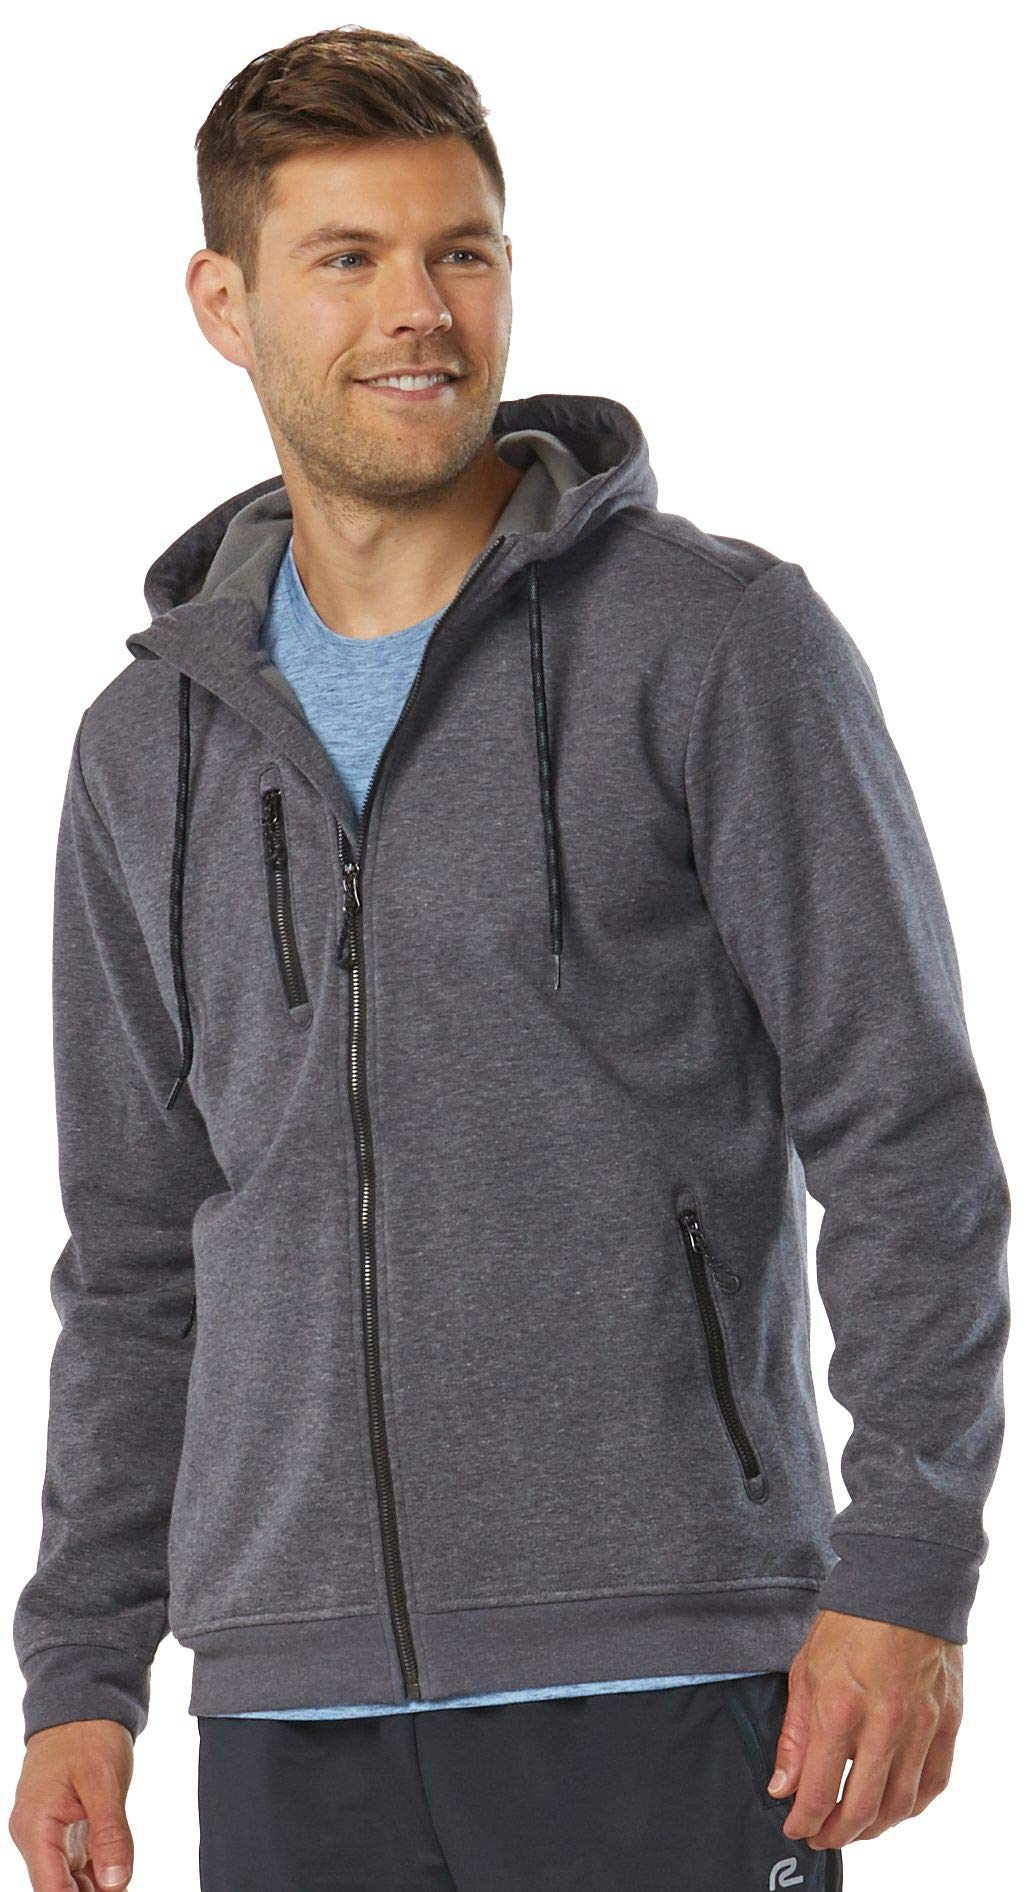 R-Gear Men's Full-Zip Water-Repellent Jacket Hoodie | Rain Chaser